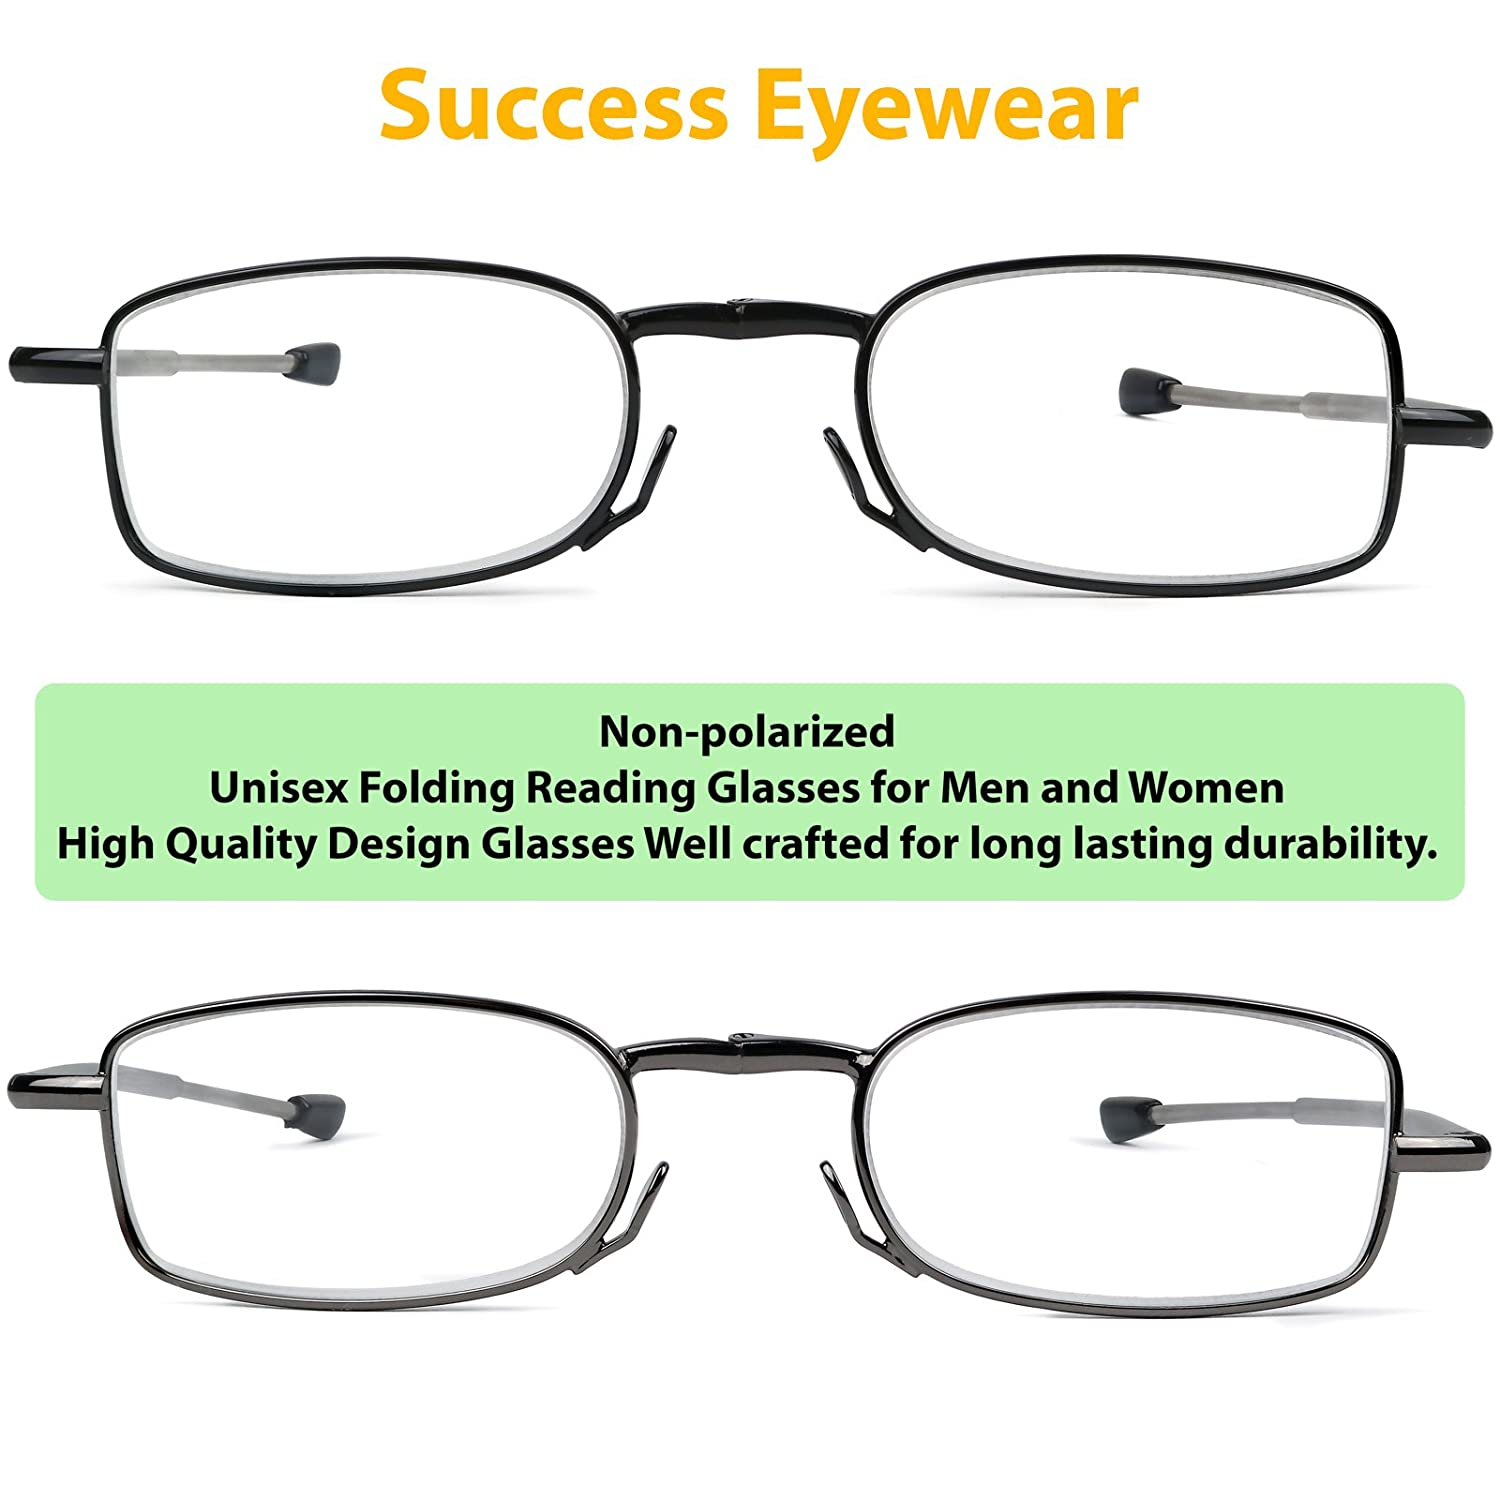 a2e16ee0597 Amazon.com  Reading Glasses 2 Pair Black and Gunmetal Readers Compact  Folding Unisex Glasses for Reading Case Included +.75  Clothing